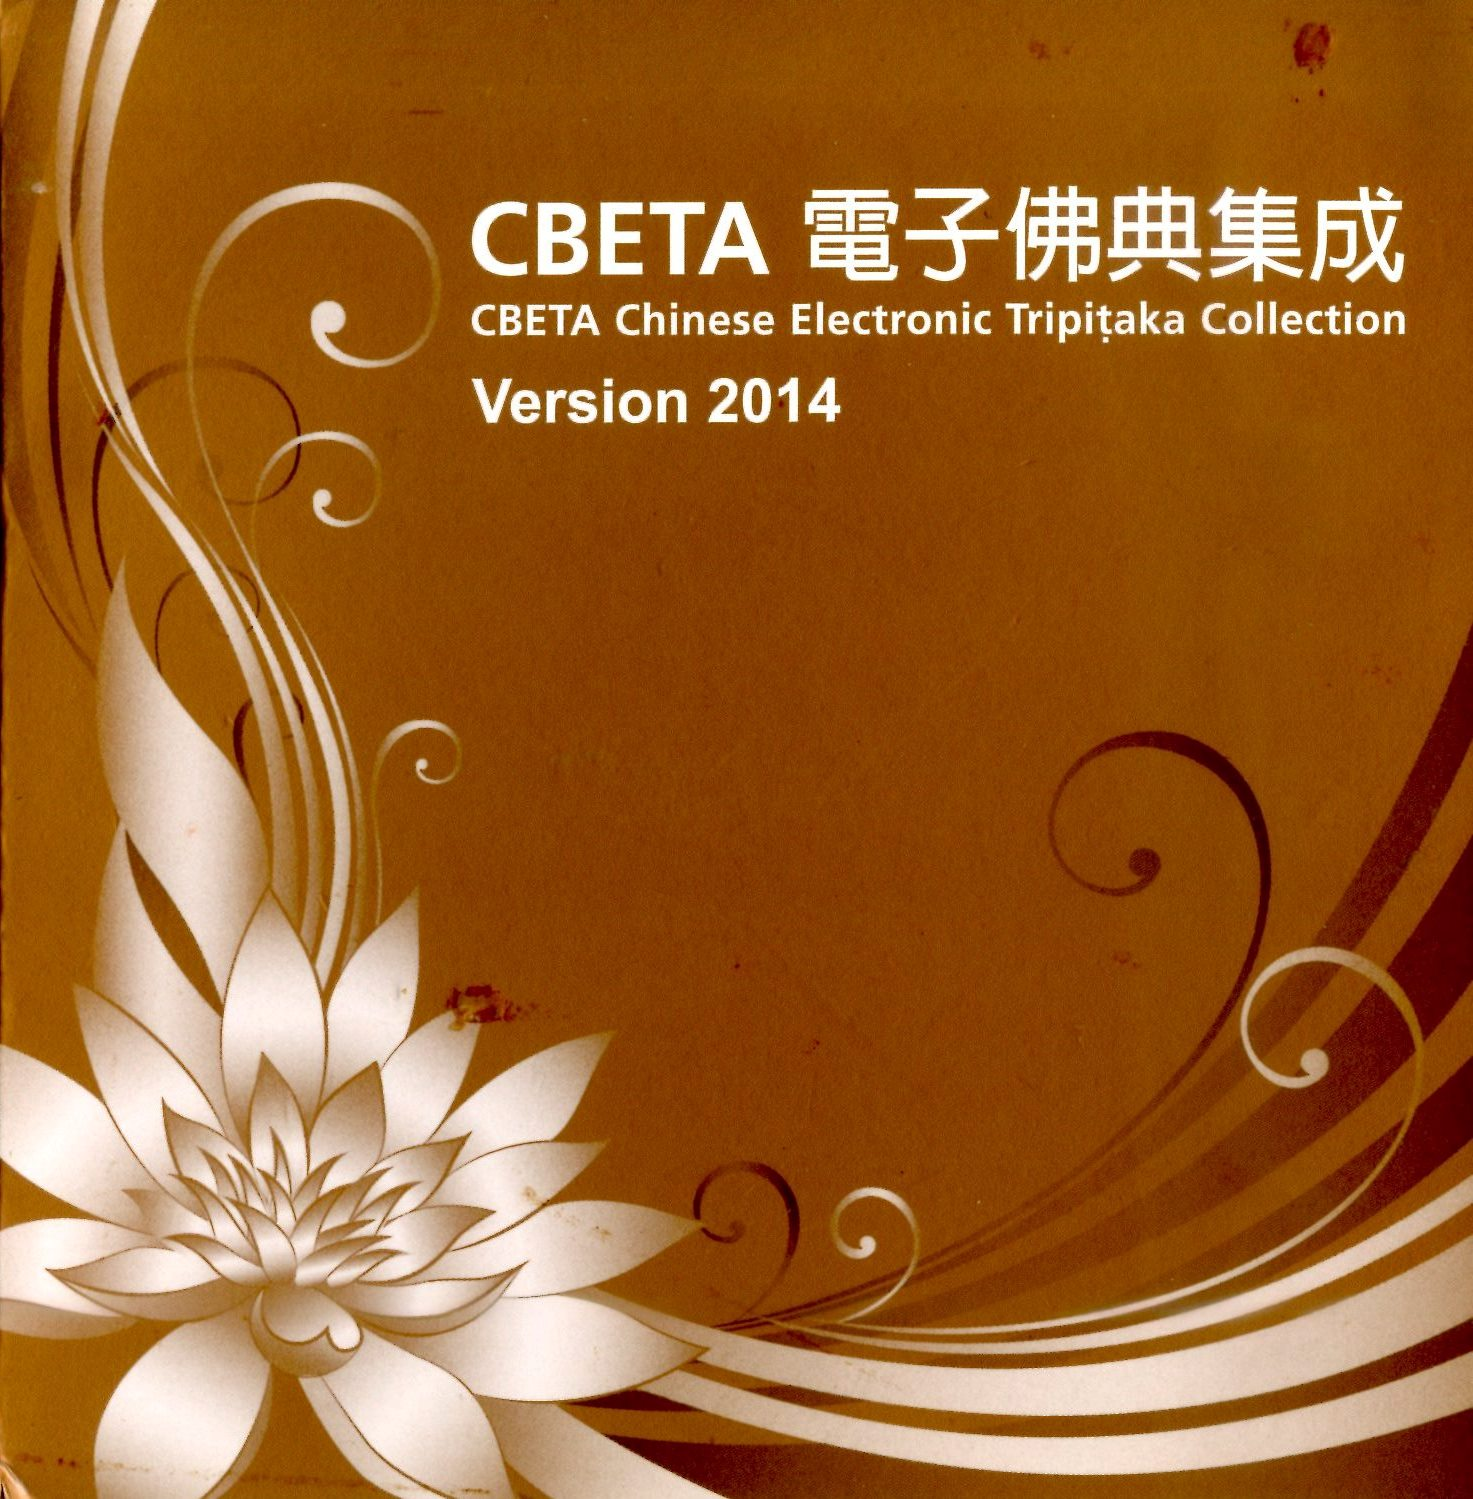 CBETA電子佛典集成 = CBETA Chinese Electronic Tripitaka Collection